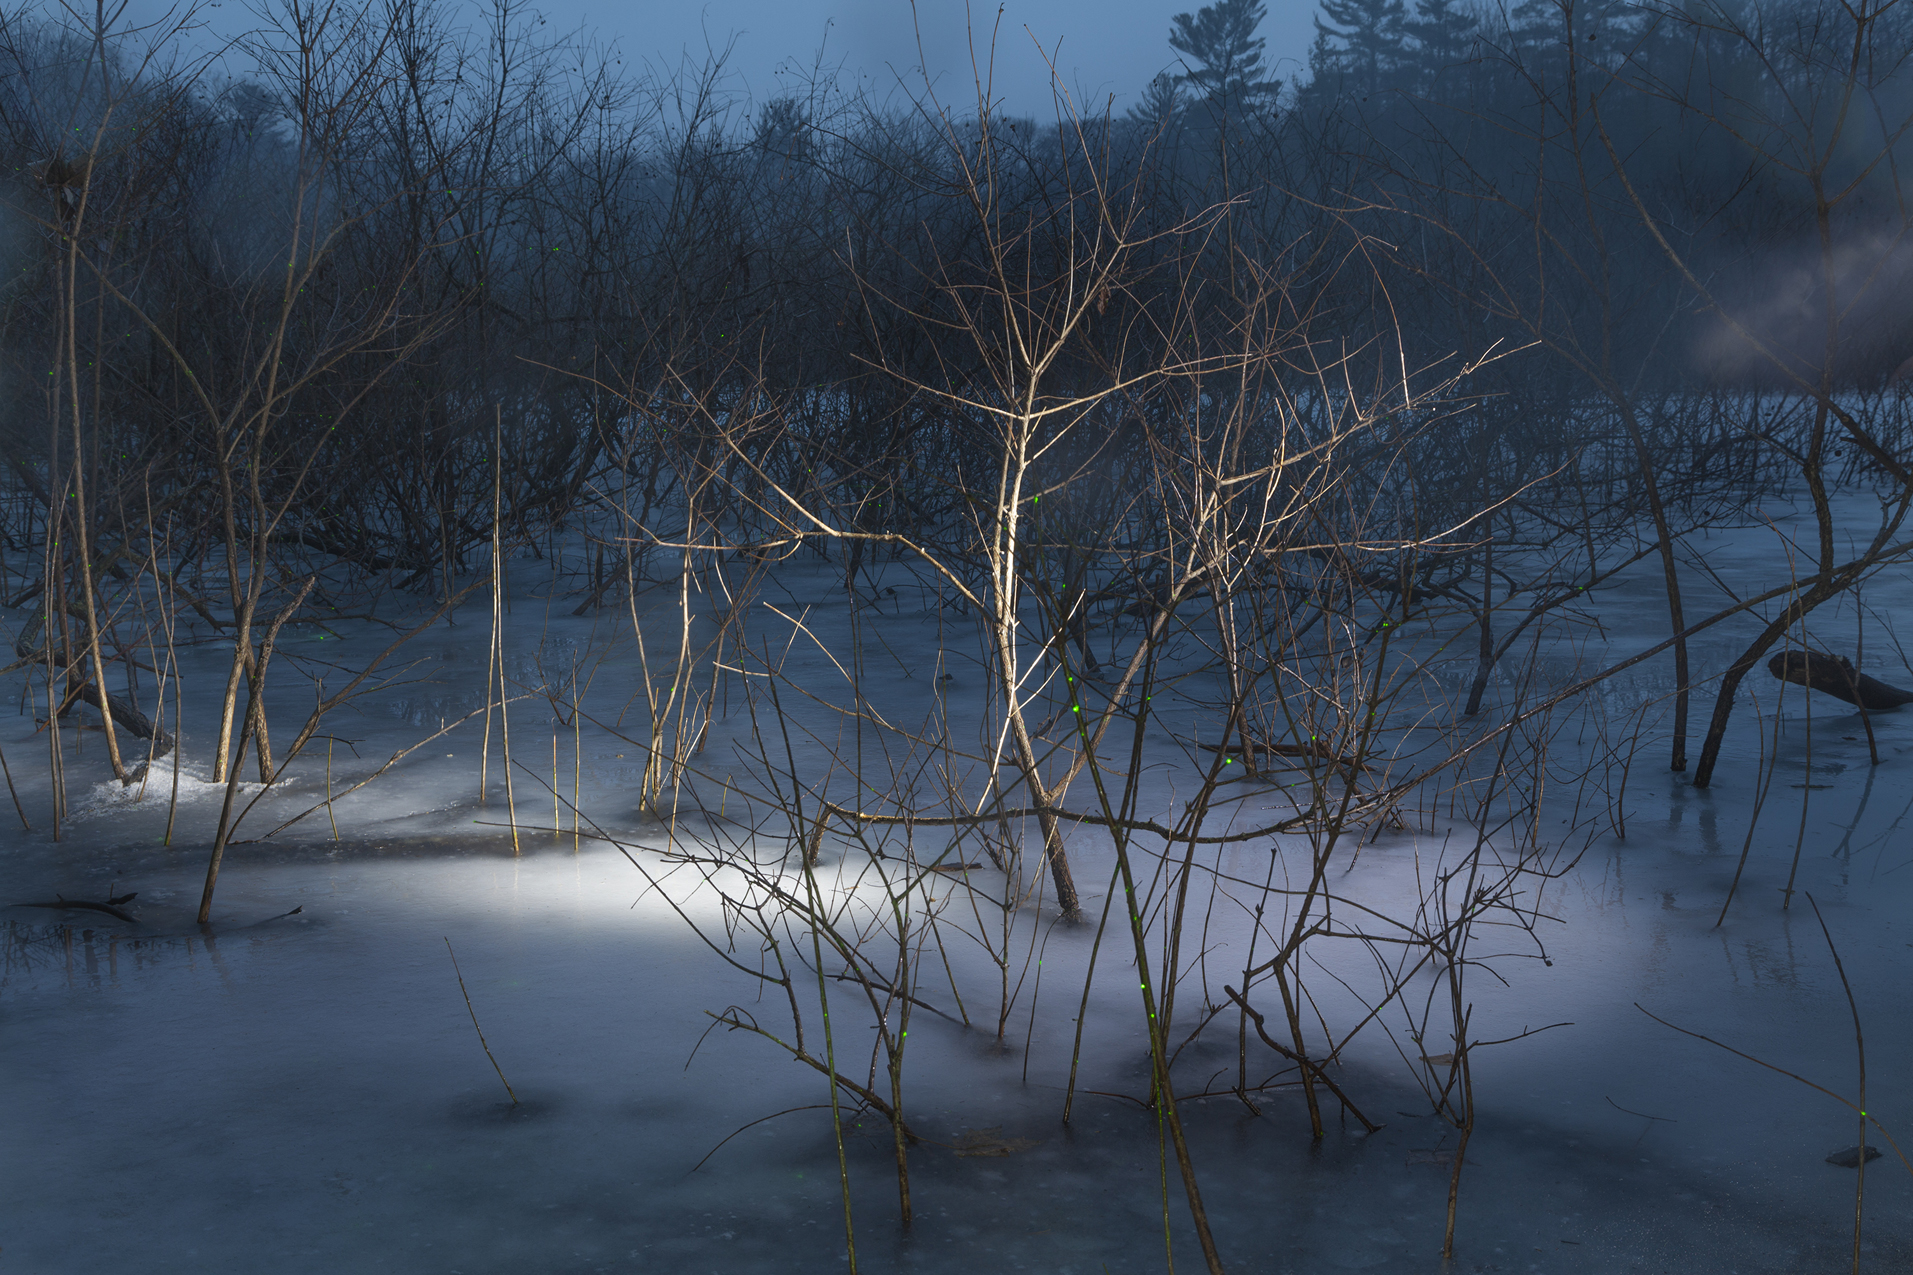 Frozen Pond, 2017 © Barbara Diener, from  Phantom Power , published by Daylight Books, 2018.